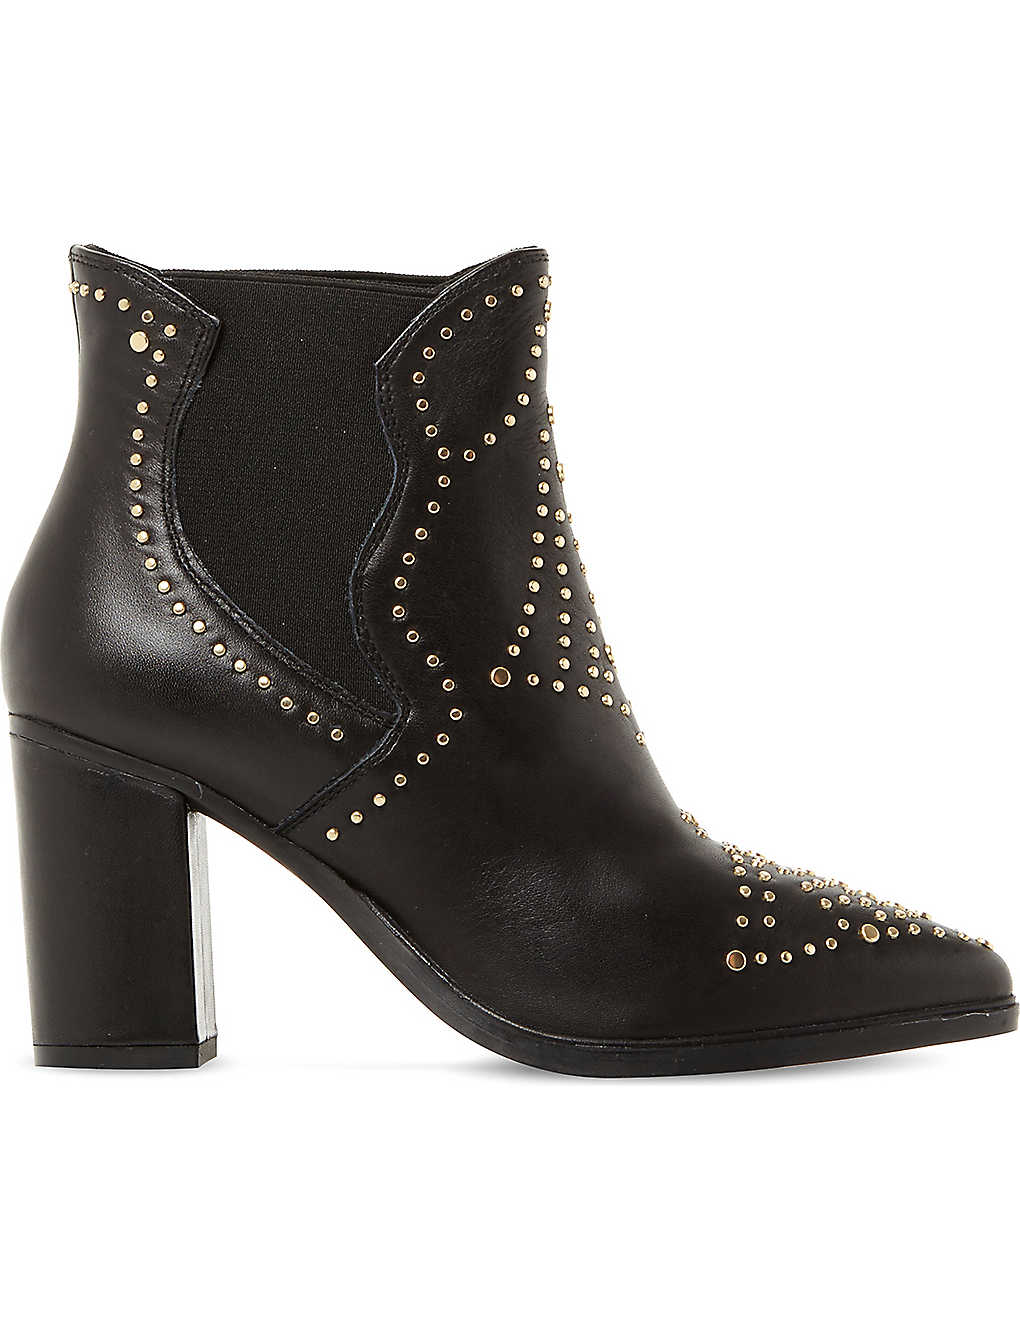 Discount Steve Madden Black-Leather Himmel Sm Studded Leather Ankle Boots for Women On Sale